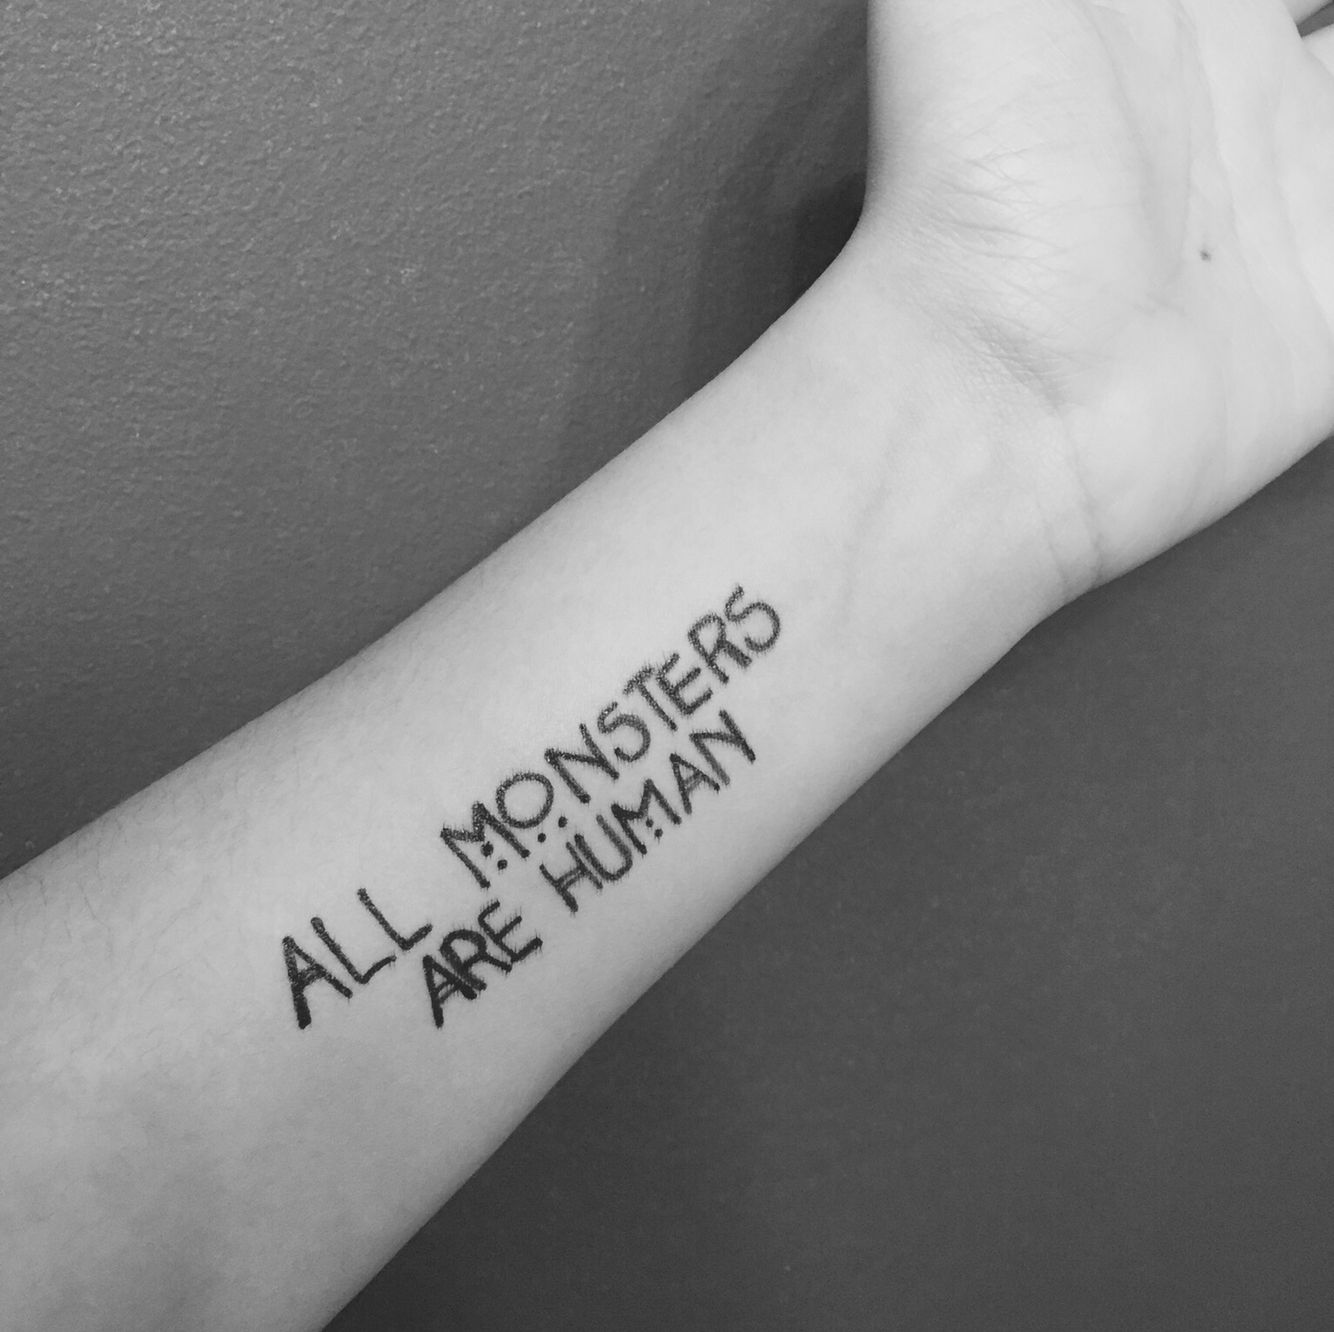 American Horror Story Tattoo All Monsters Are Human Movie Tattoos Forearm Tattoo Girl Tattoos